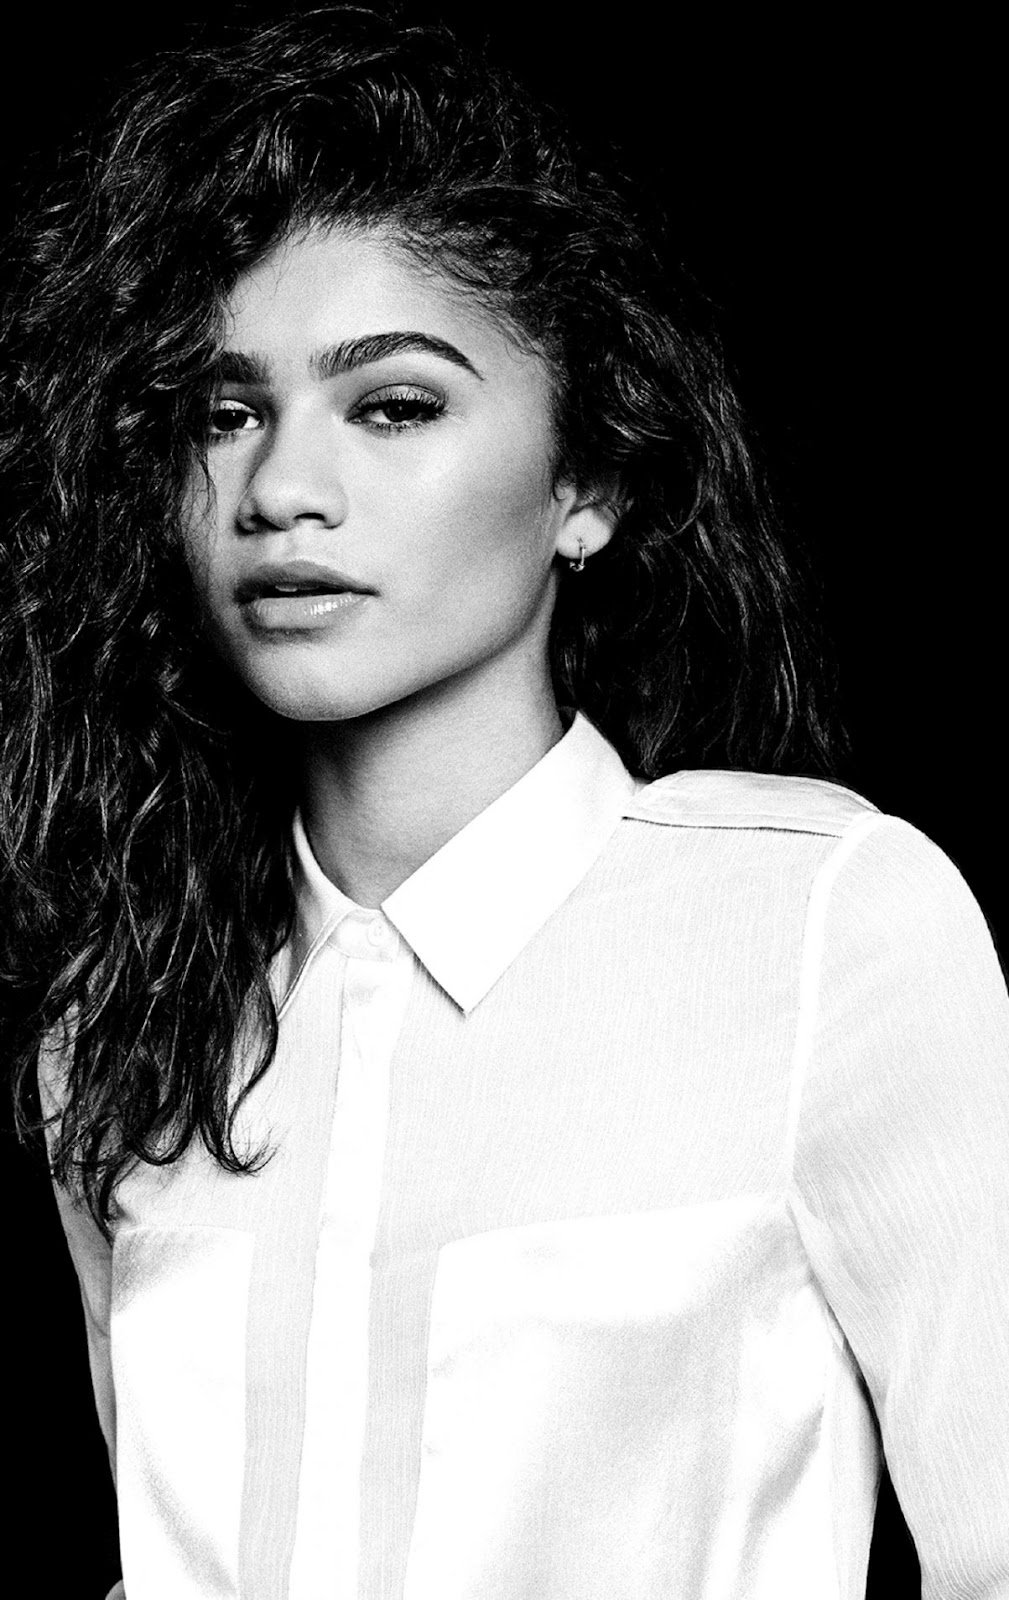 Download zendaya monochrome 800x600 resolution full hd 2k wallpaper